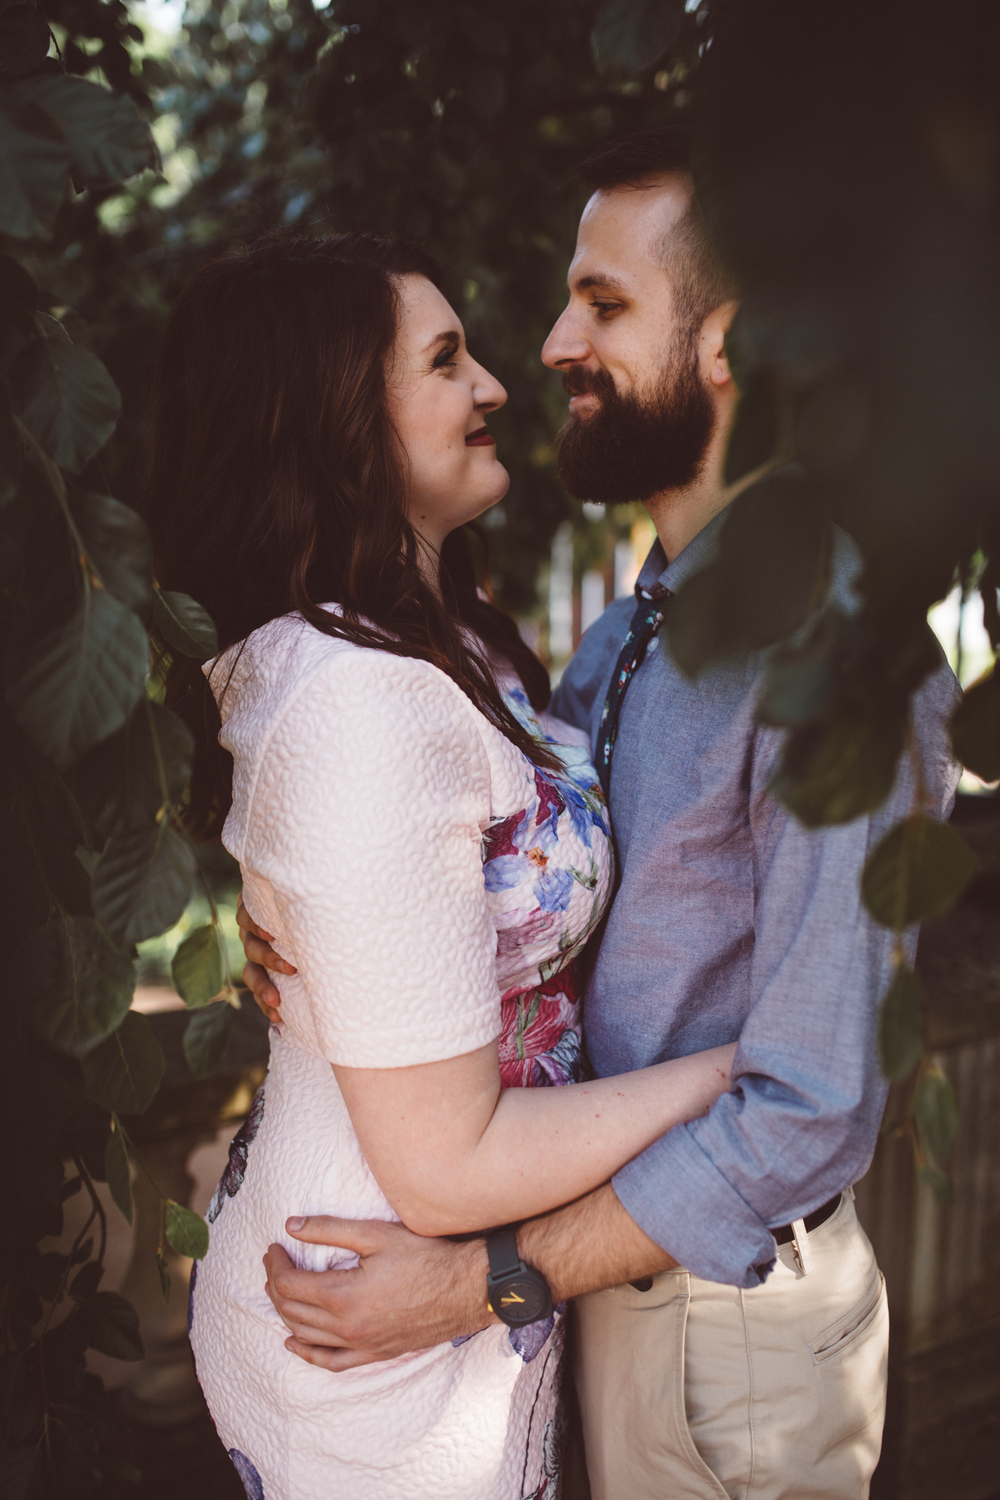 KDP_LG&Logan_engagements-243.JPG